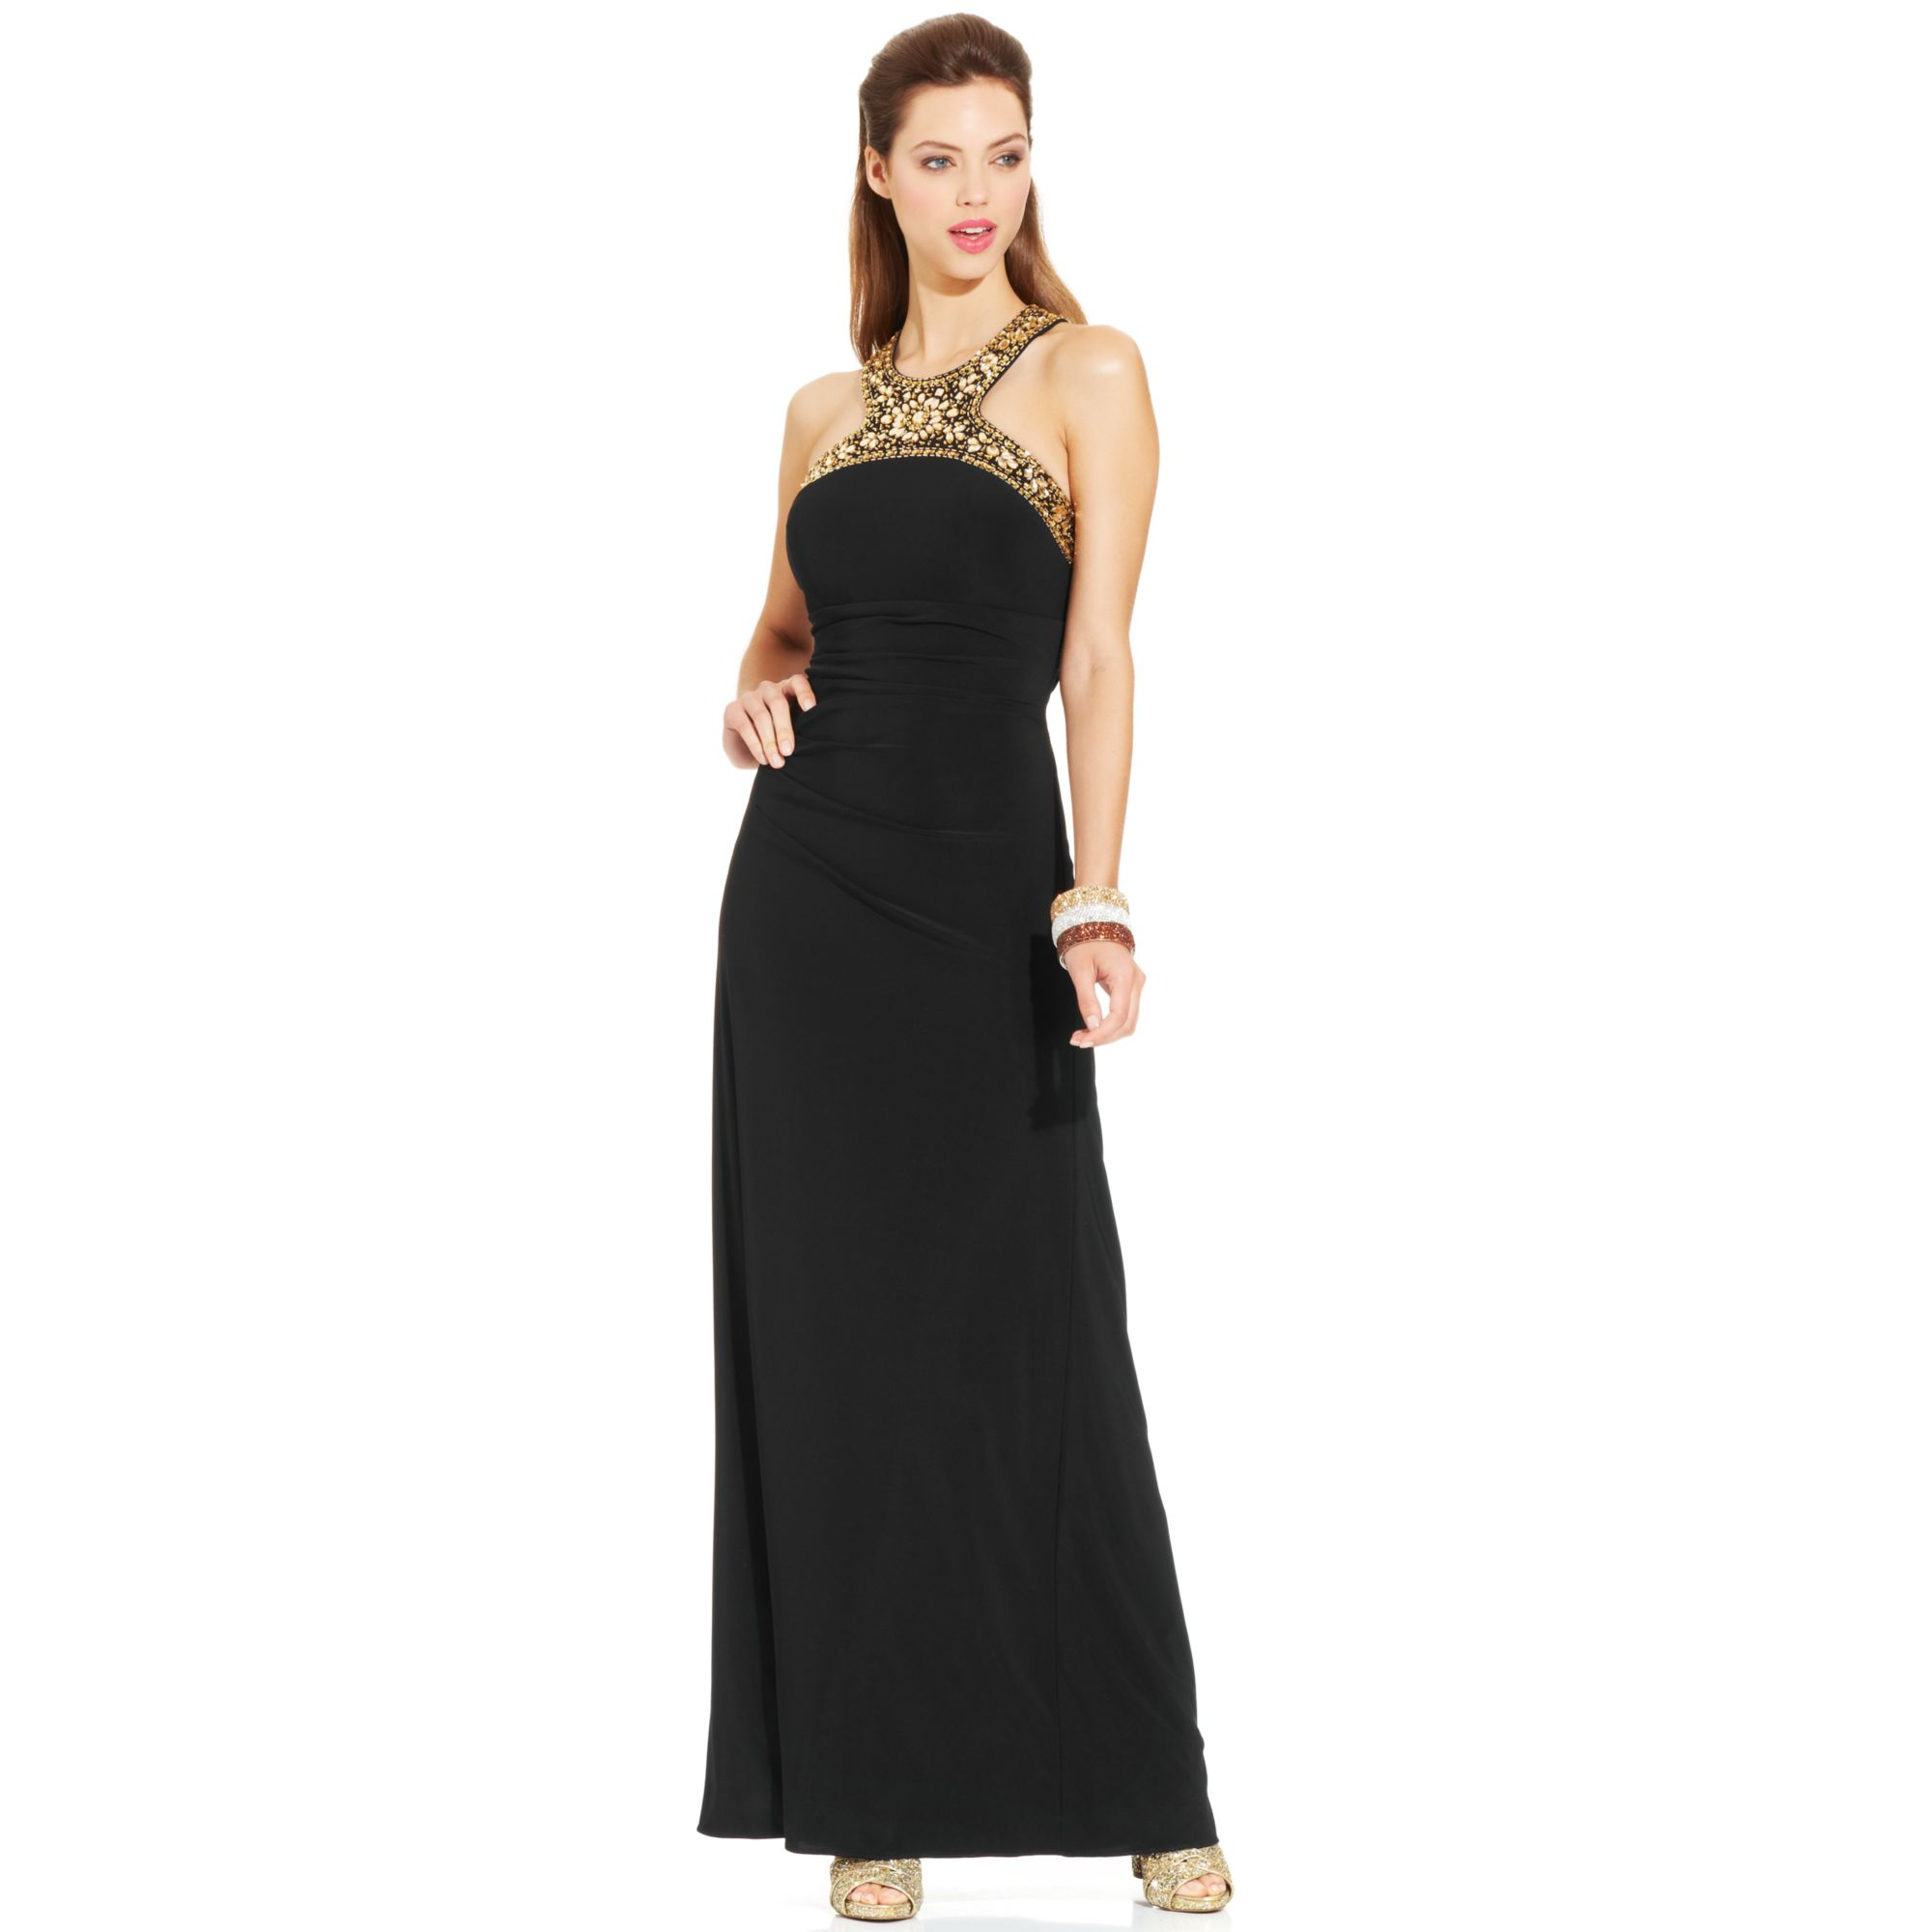 Lyst - Xscape Jeweltrim Ruched Halter Gown in Black